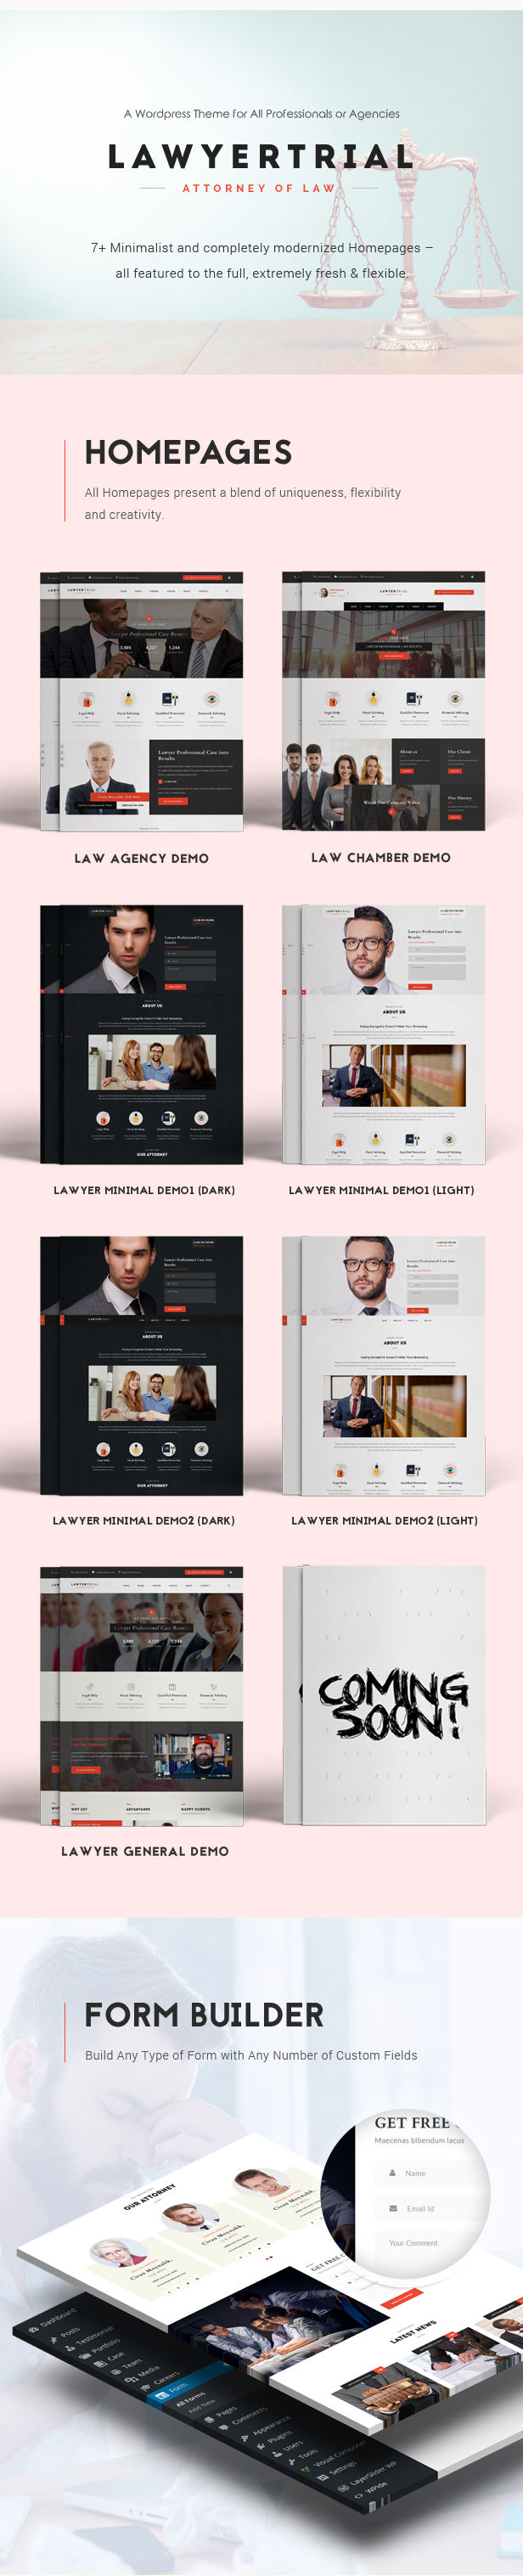 Lawyer Trial - WP Theme for Lawyers, Attorneys and Professionals with Appointment System